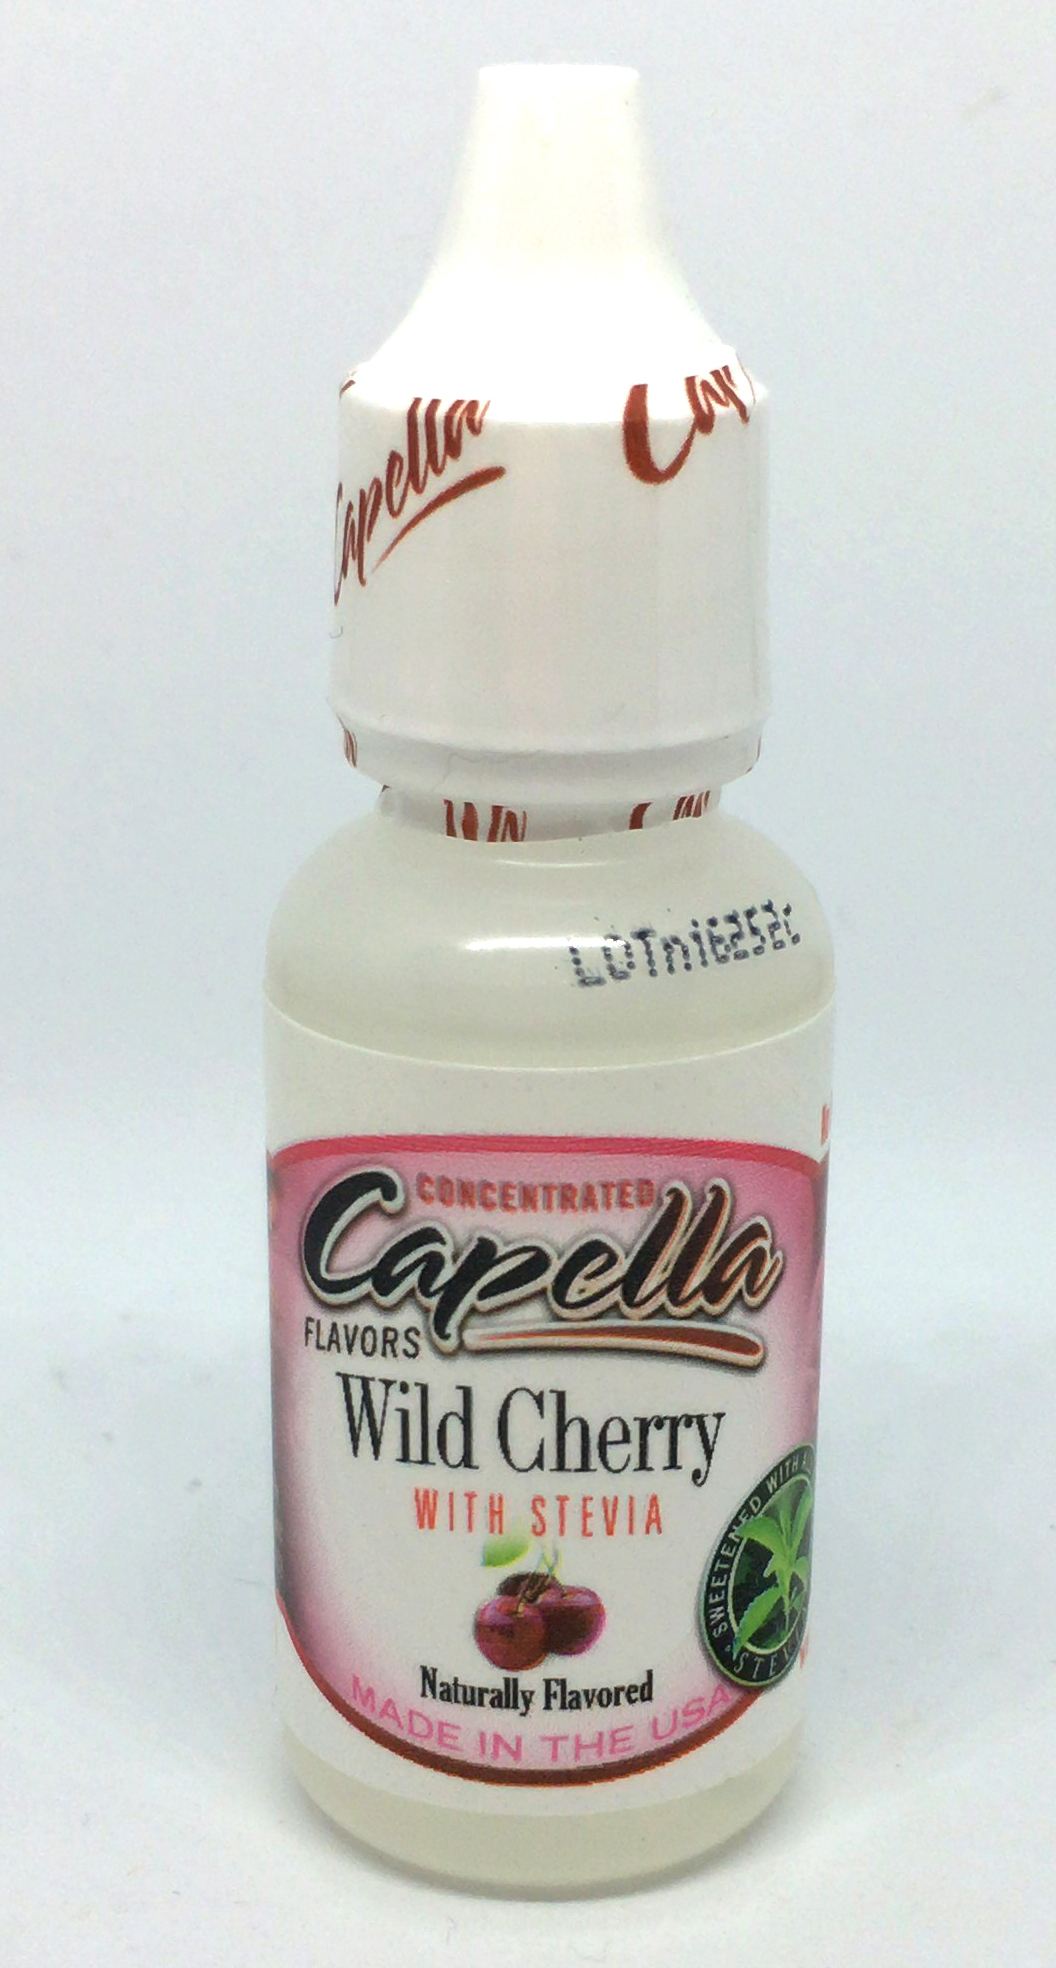 Capella Wild Cherry with stevia | アメリカンチェリーだ!